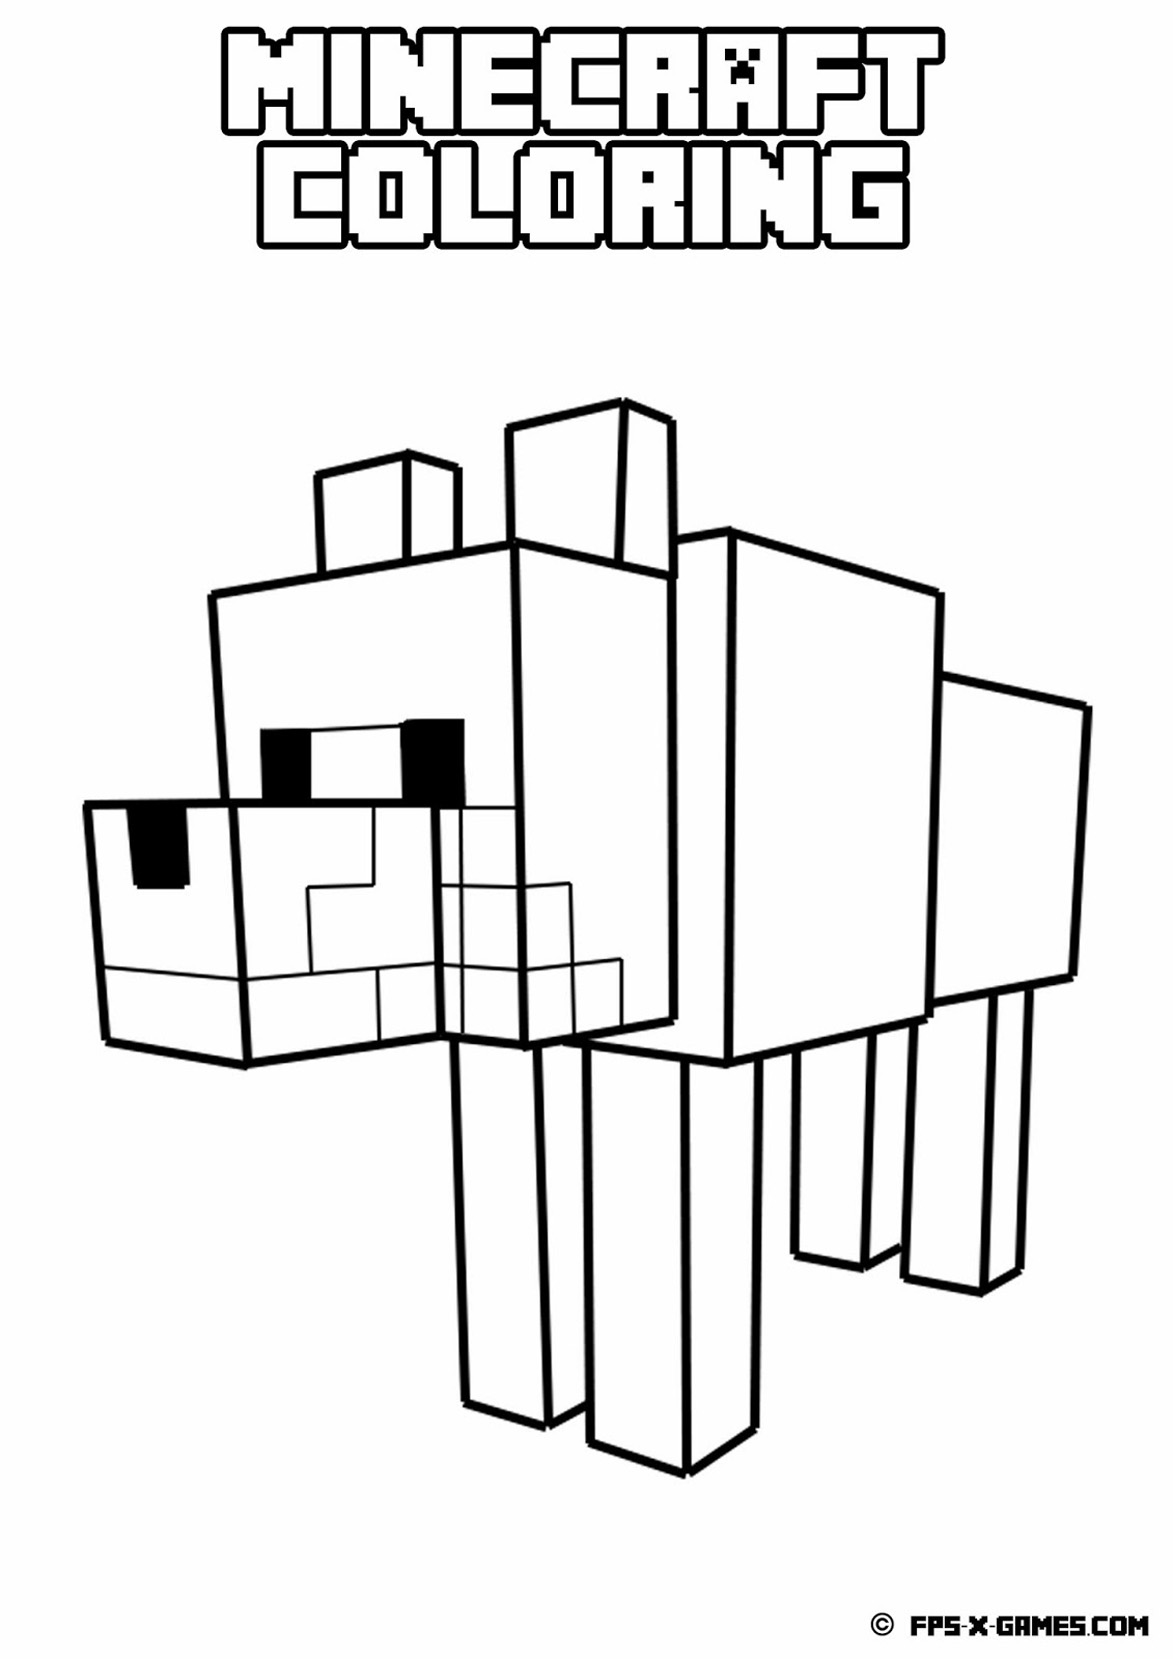 Free coloring pages roblox - 29 Unique Free Minecraft Coloring Pages Gianfreda Net